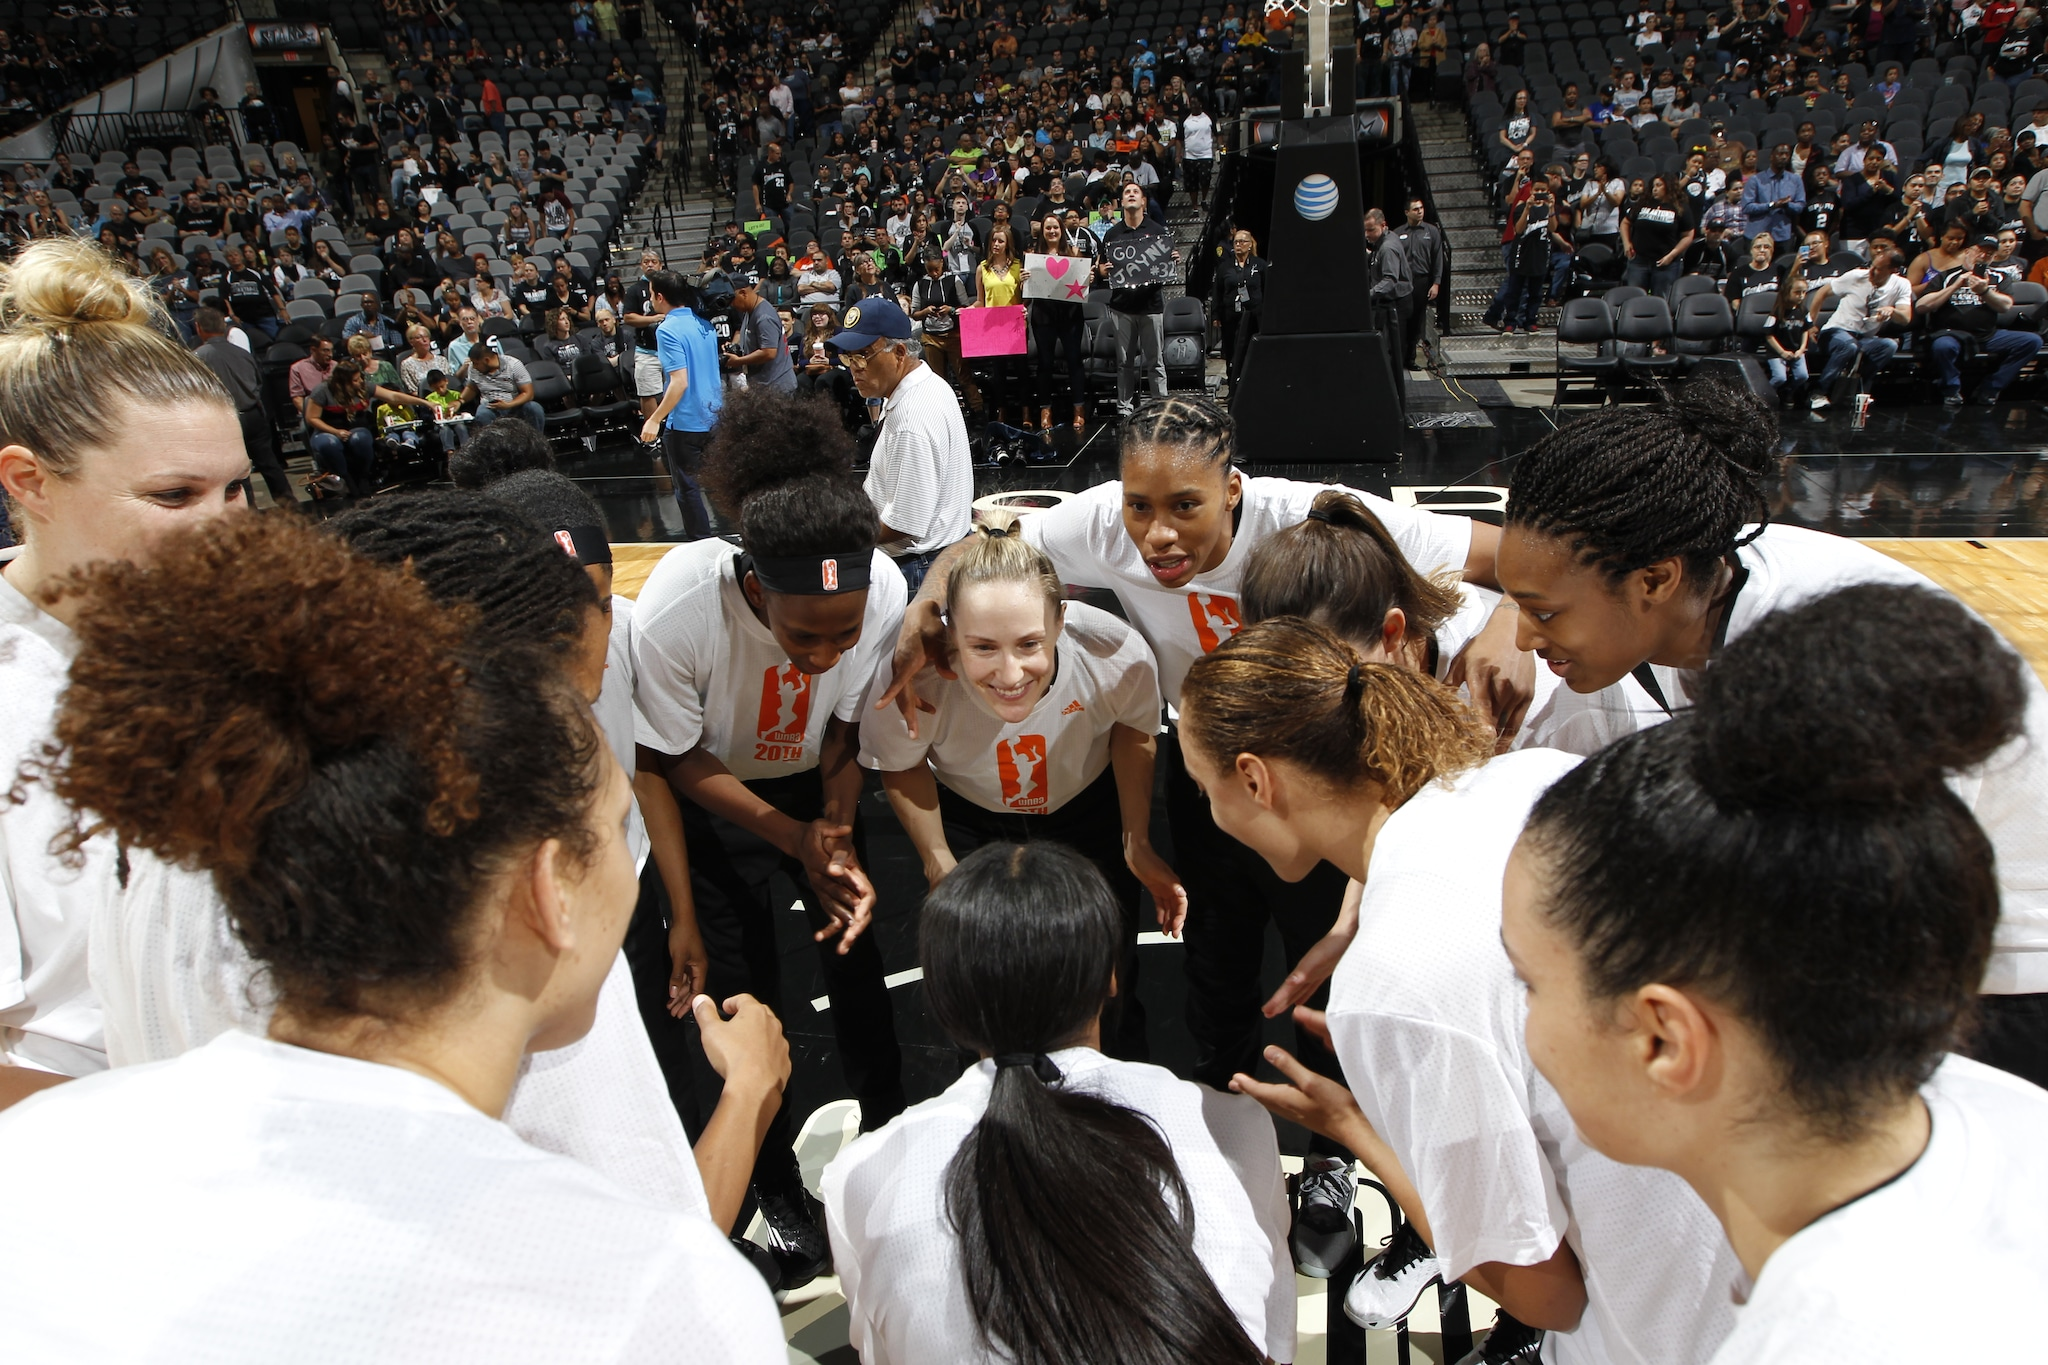 SAN ANTONIO, TX - MAY 14: The San Antonio Stars huddle before the game against the Atlanta Dream on May 14, 2016 at AT&T Center in San Antonio, Texas. NOTE TO USER: User expressly acknowledges and agrees that, by downloading and or using this Photograph, user is consenting to the terms and conditions of the Getty Images License Agreement. Mandatory Copyright Notice: Copyright 2016 NBAE (Photo by Chris Covatta/NBAE via Getty Images)